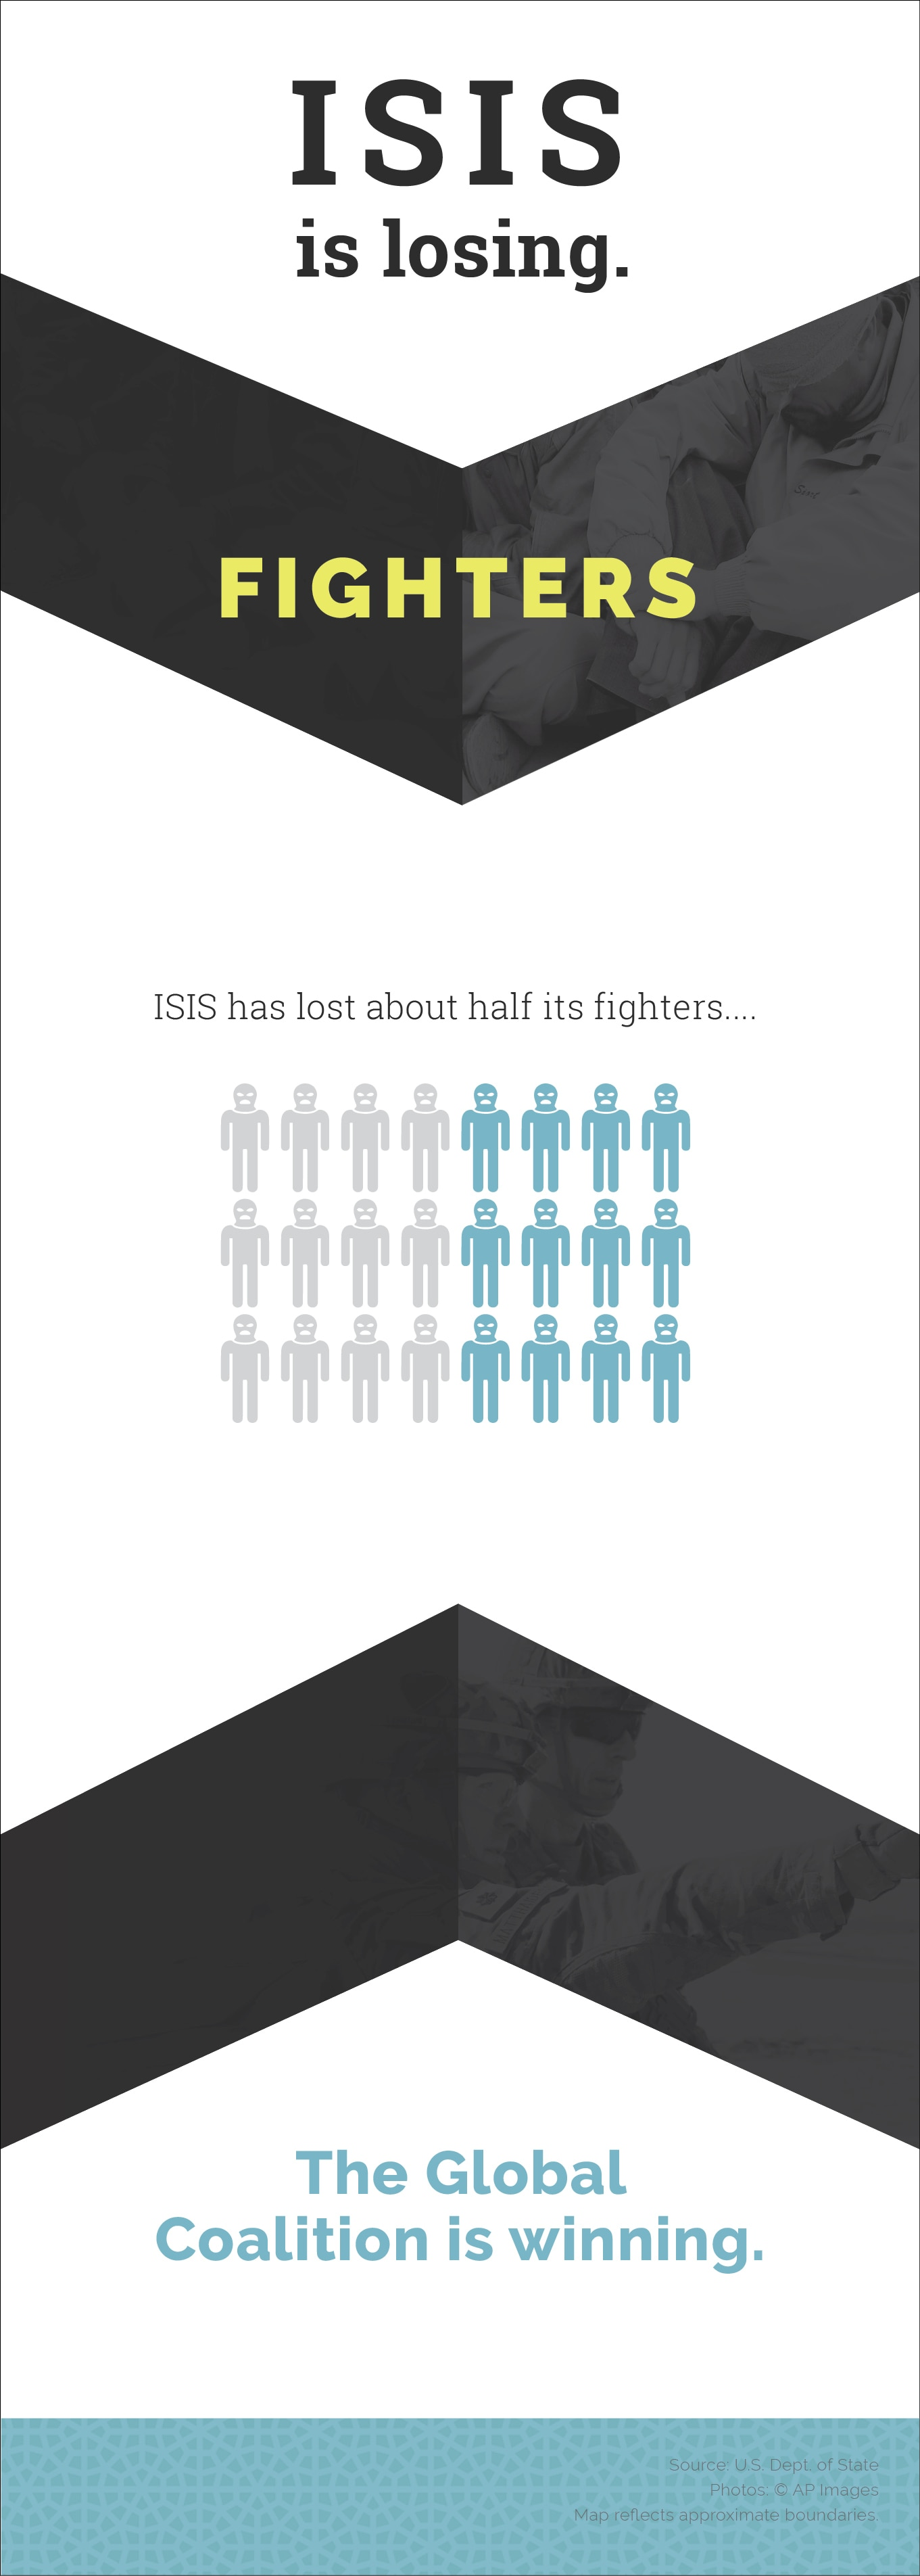 Graphic showing fighters lost by ISIS (State Dept.)